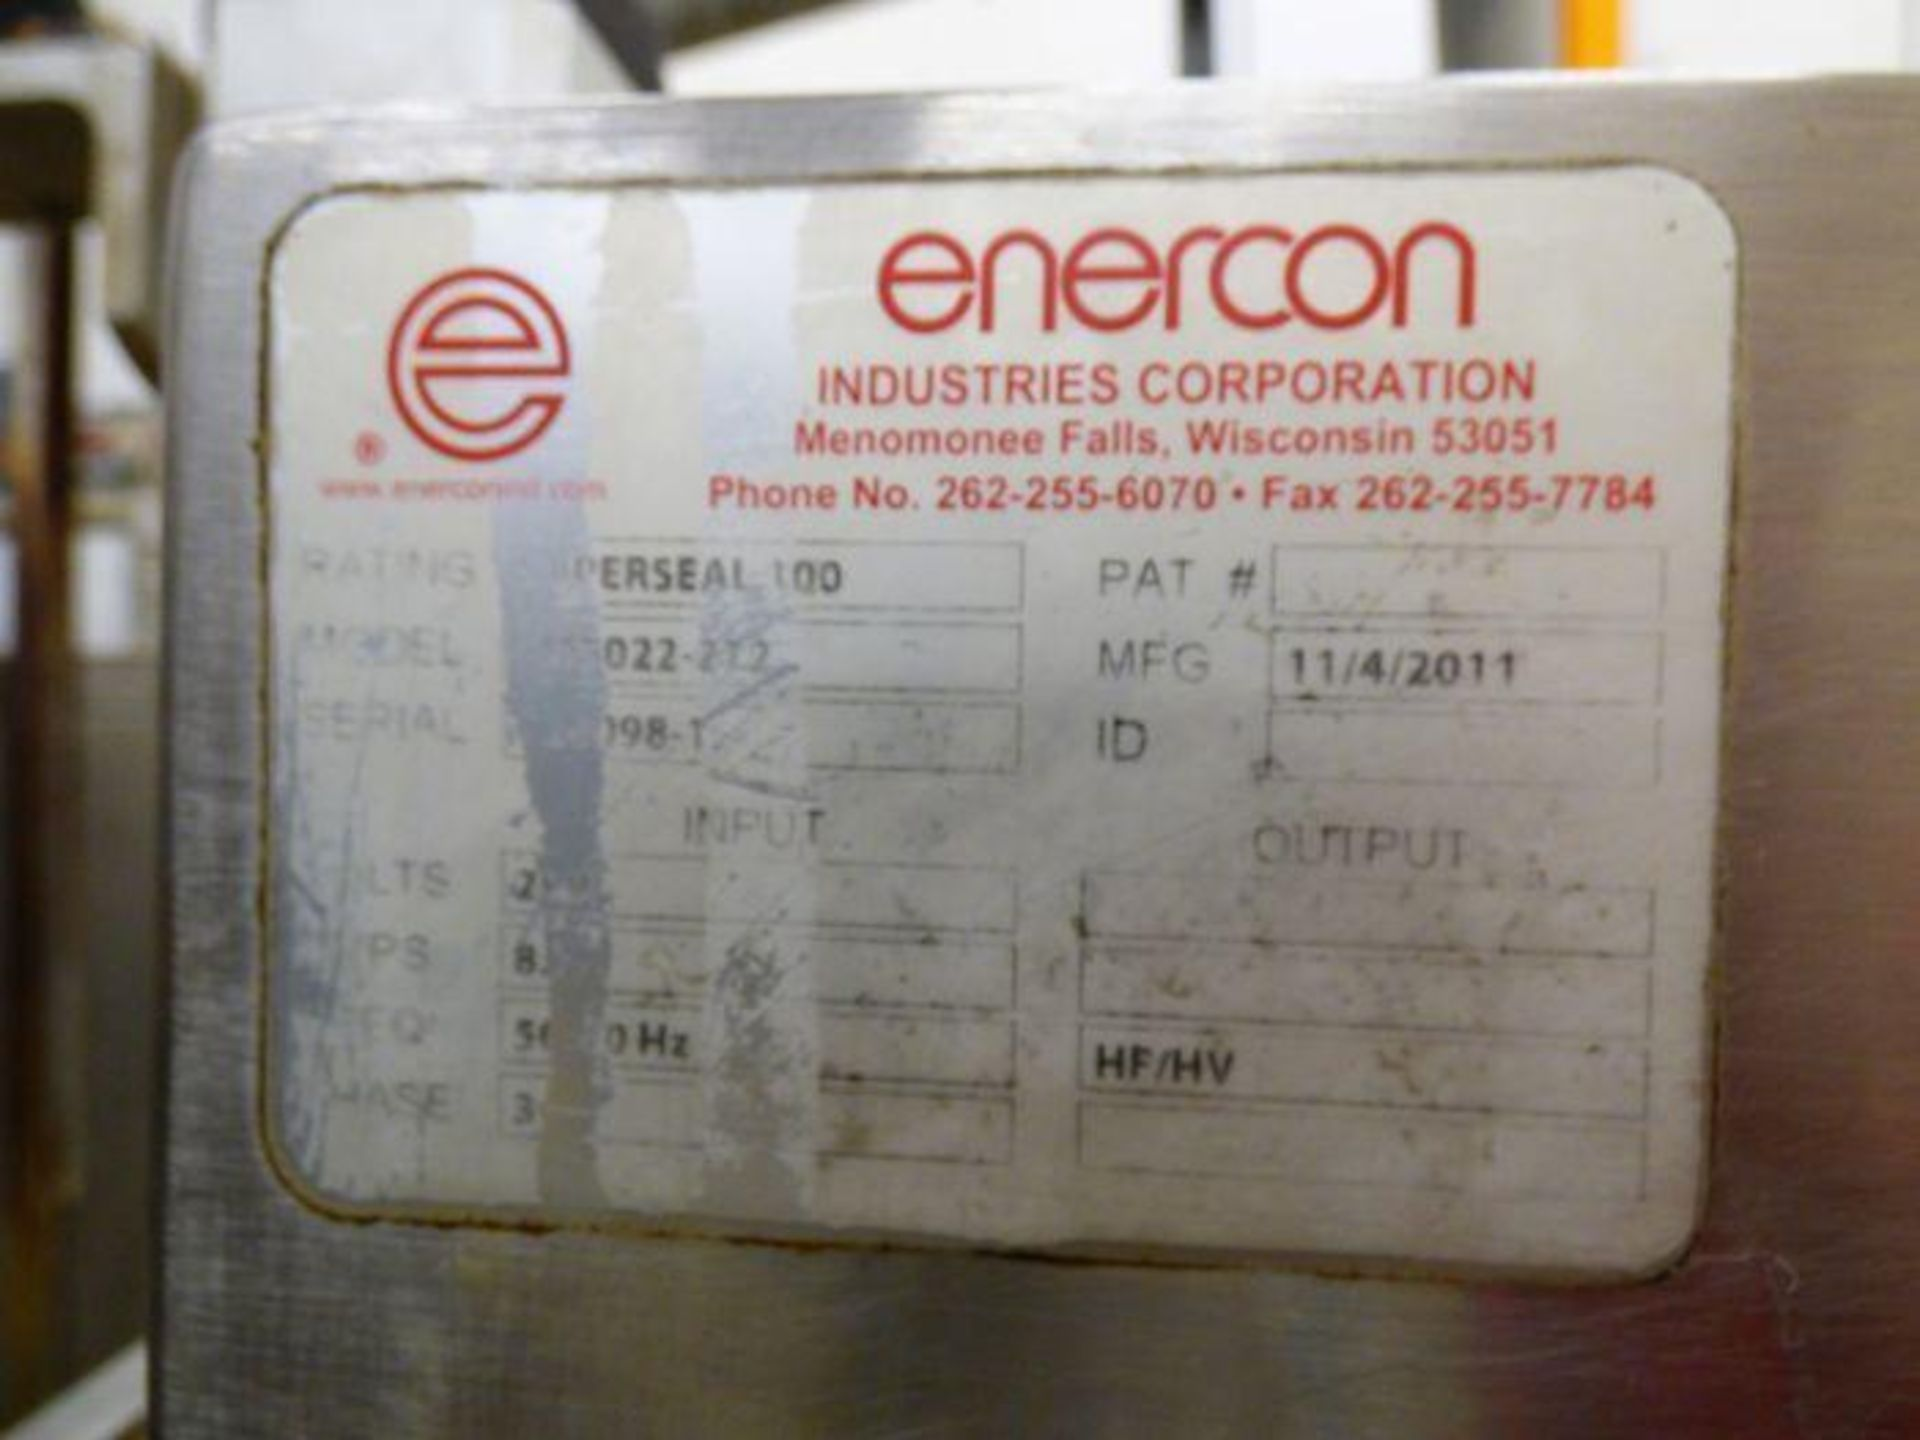 Enercon Super Seal Touch 100 with Spare Parts - Image 17 of 17